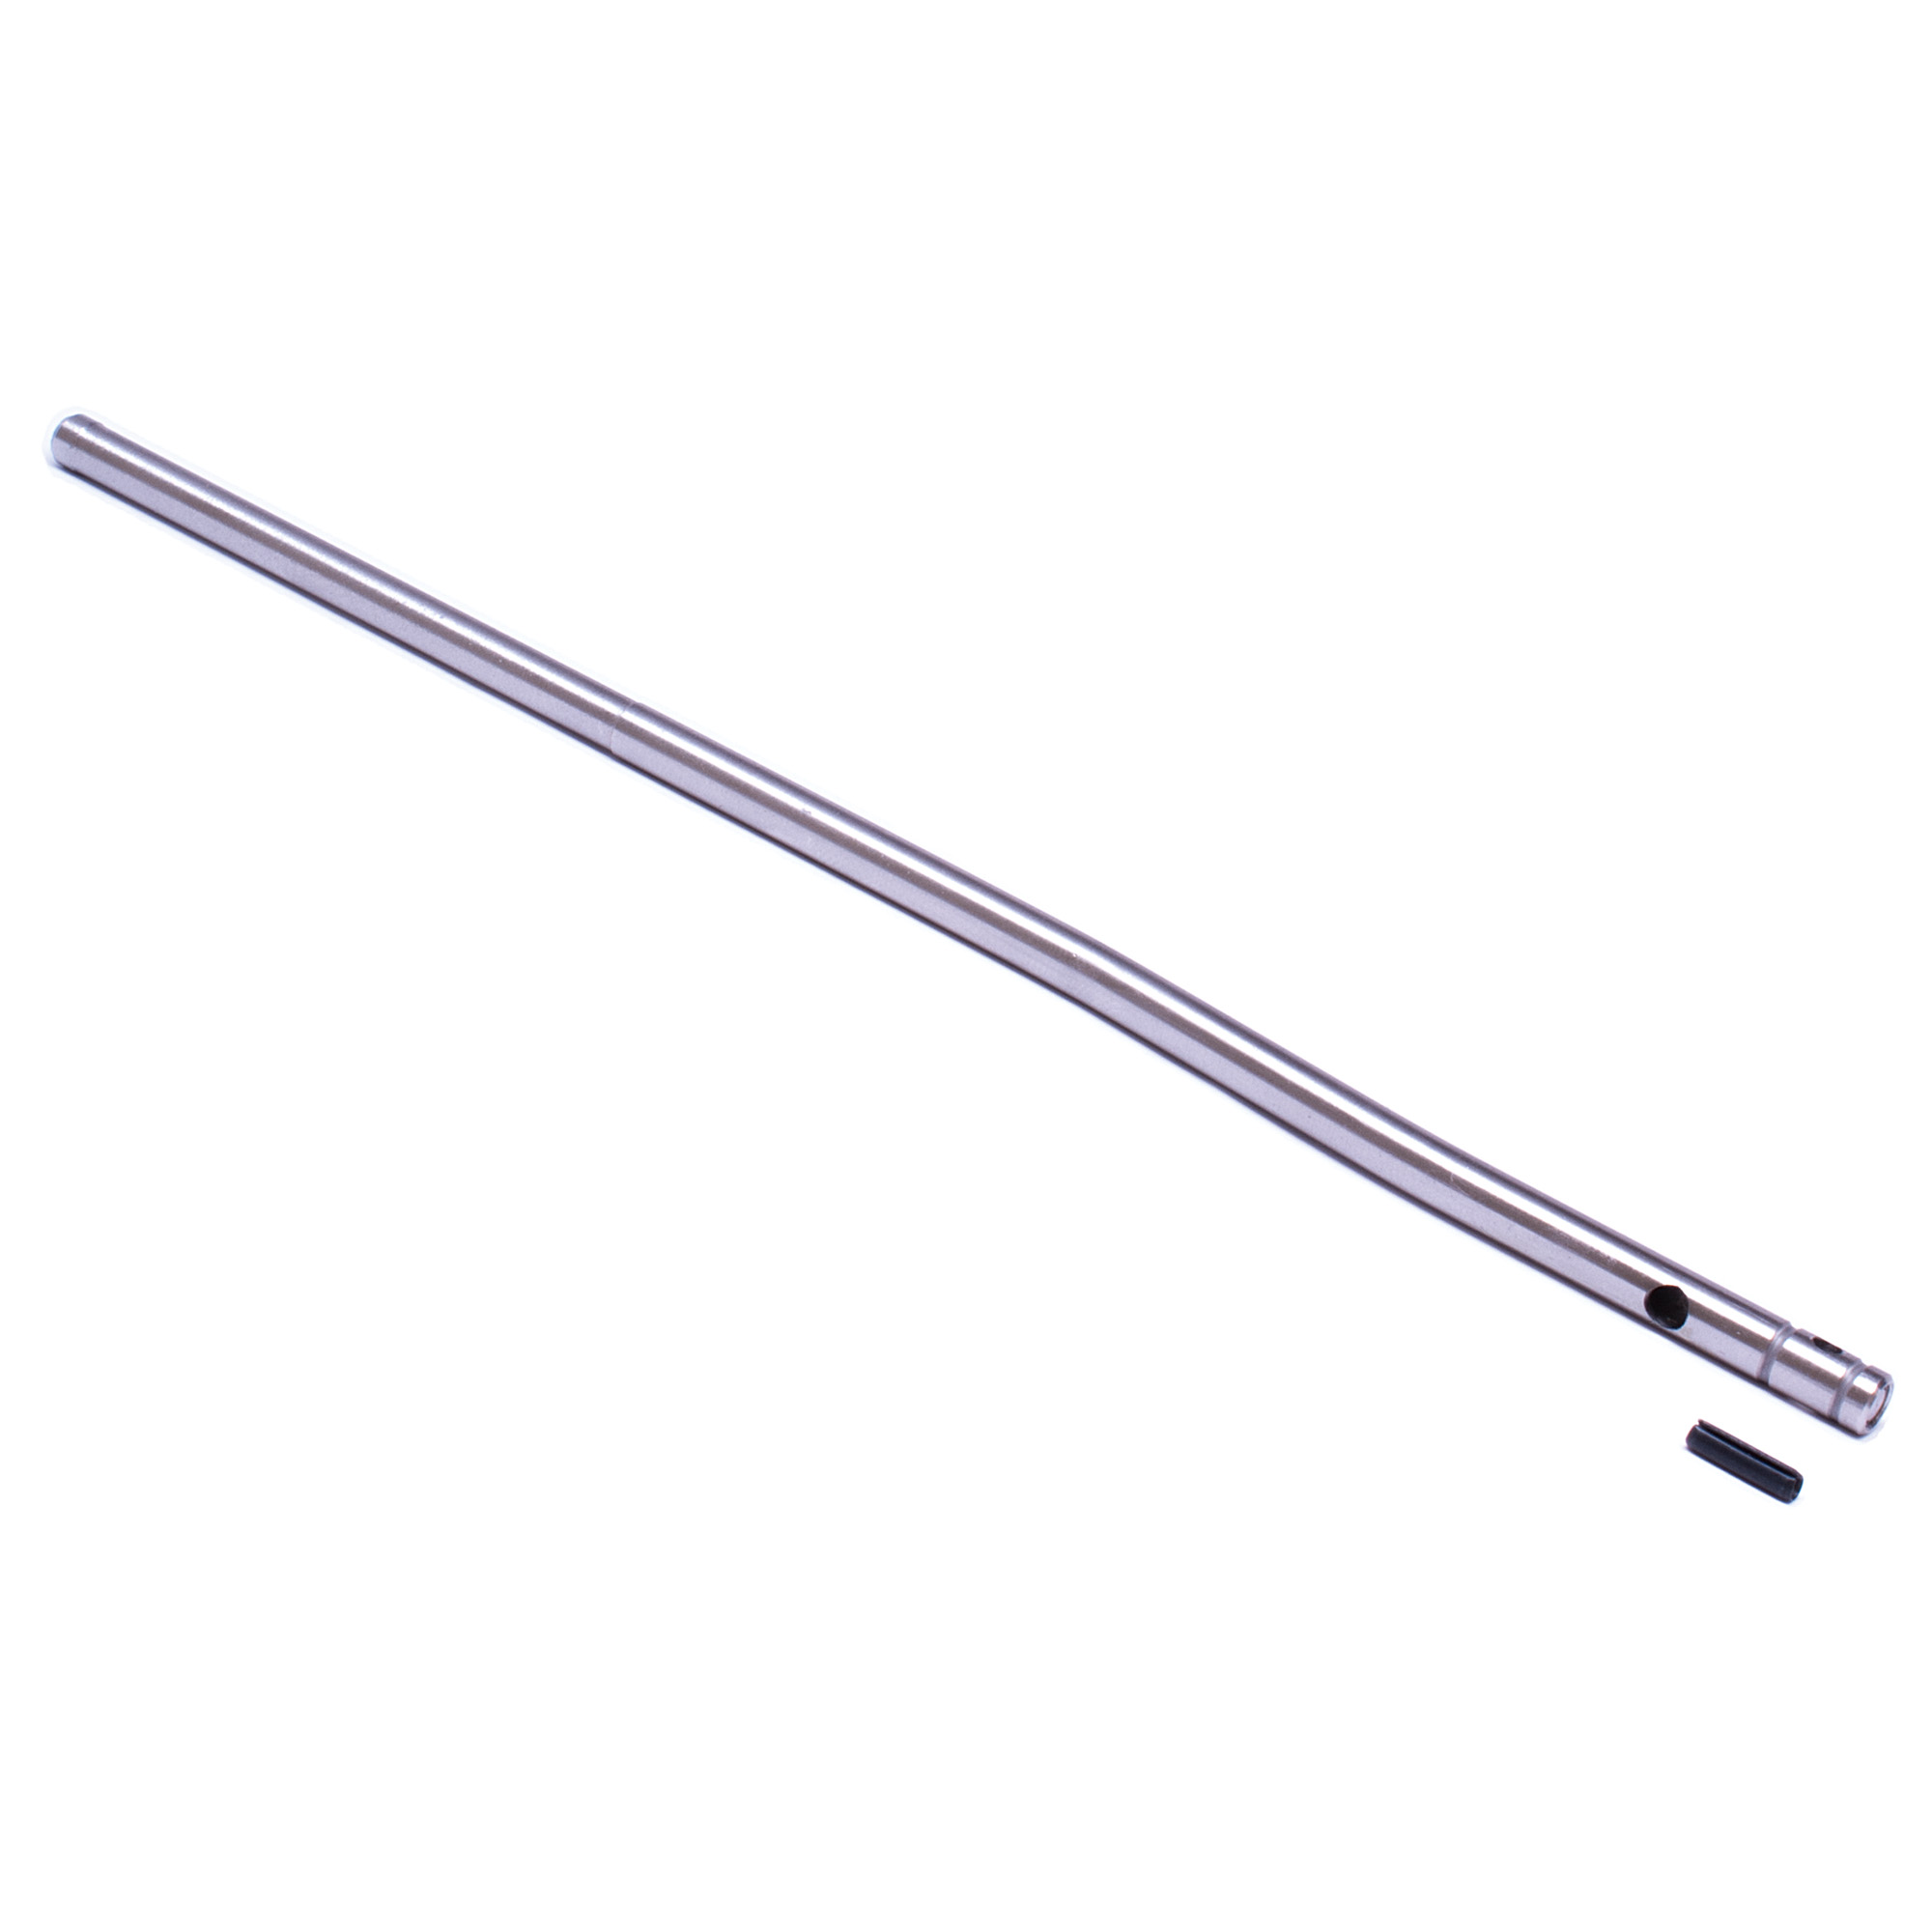 Luth AR Pistol Length Gas Tube